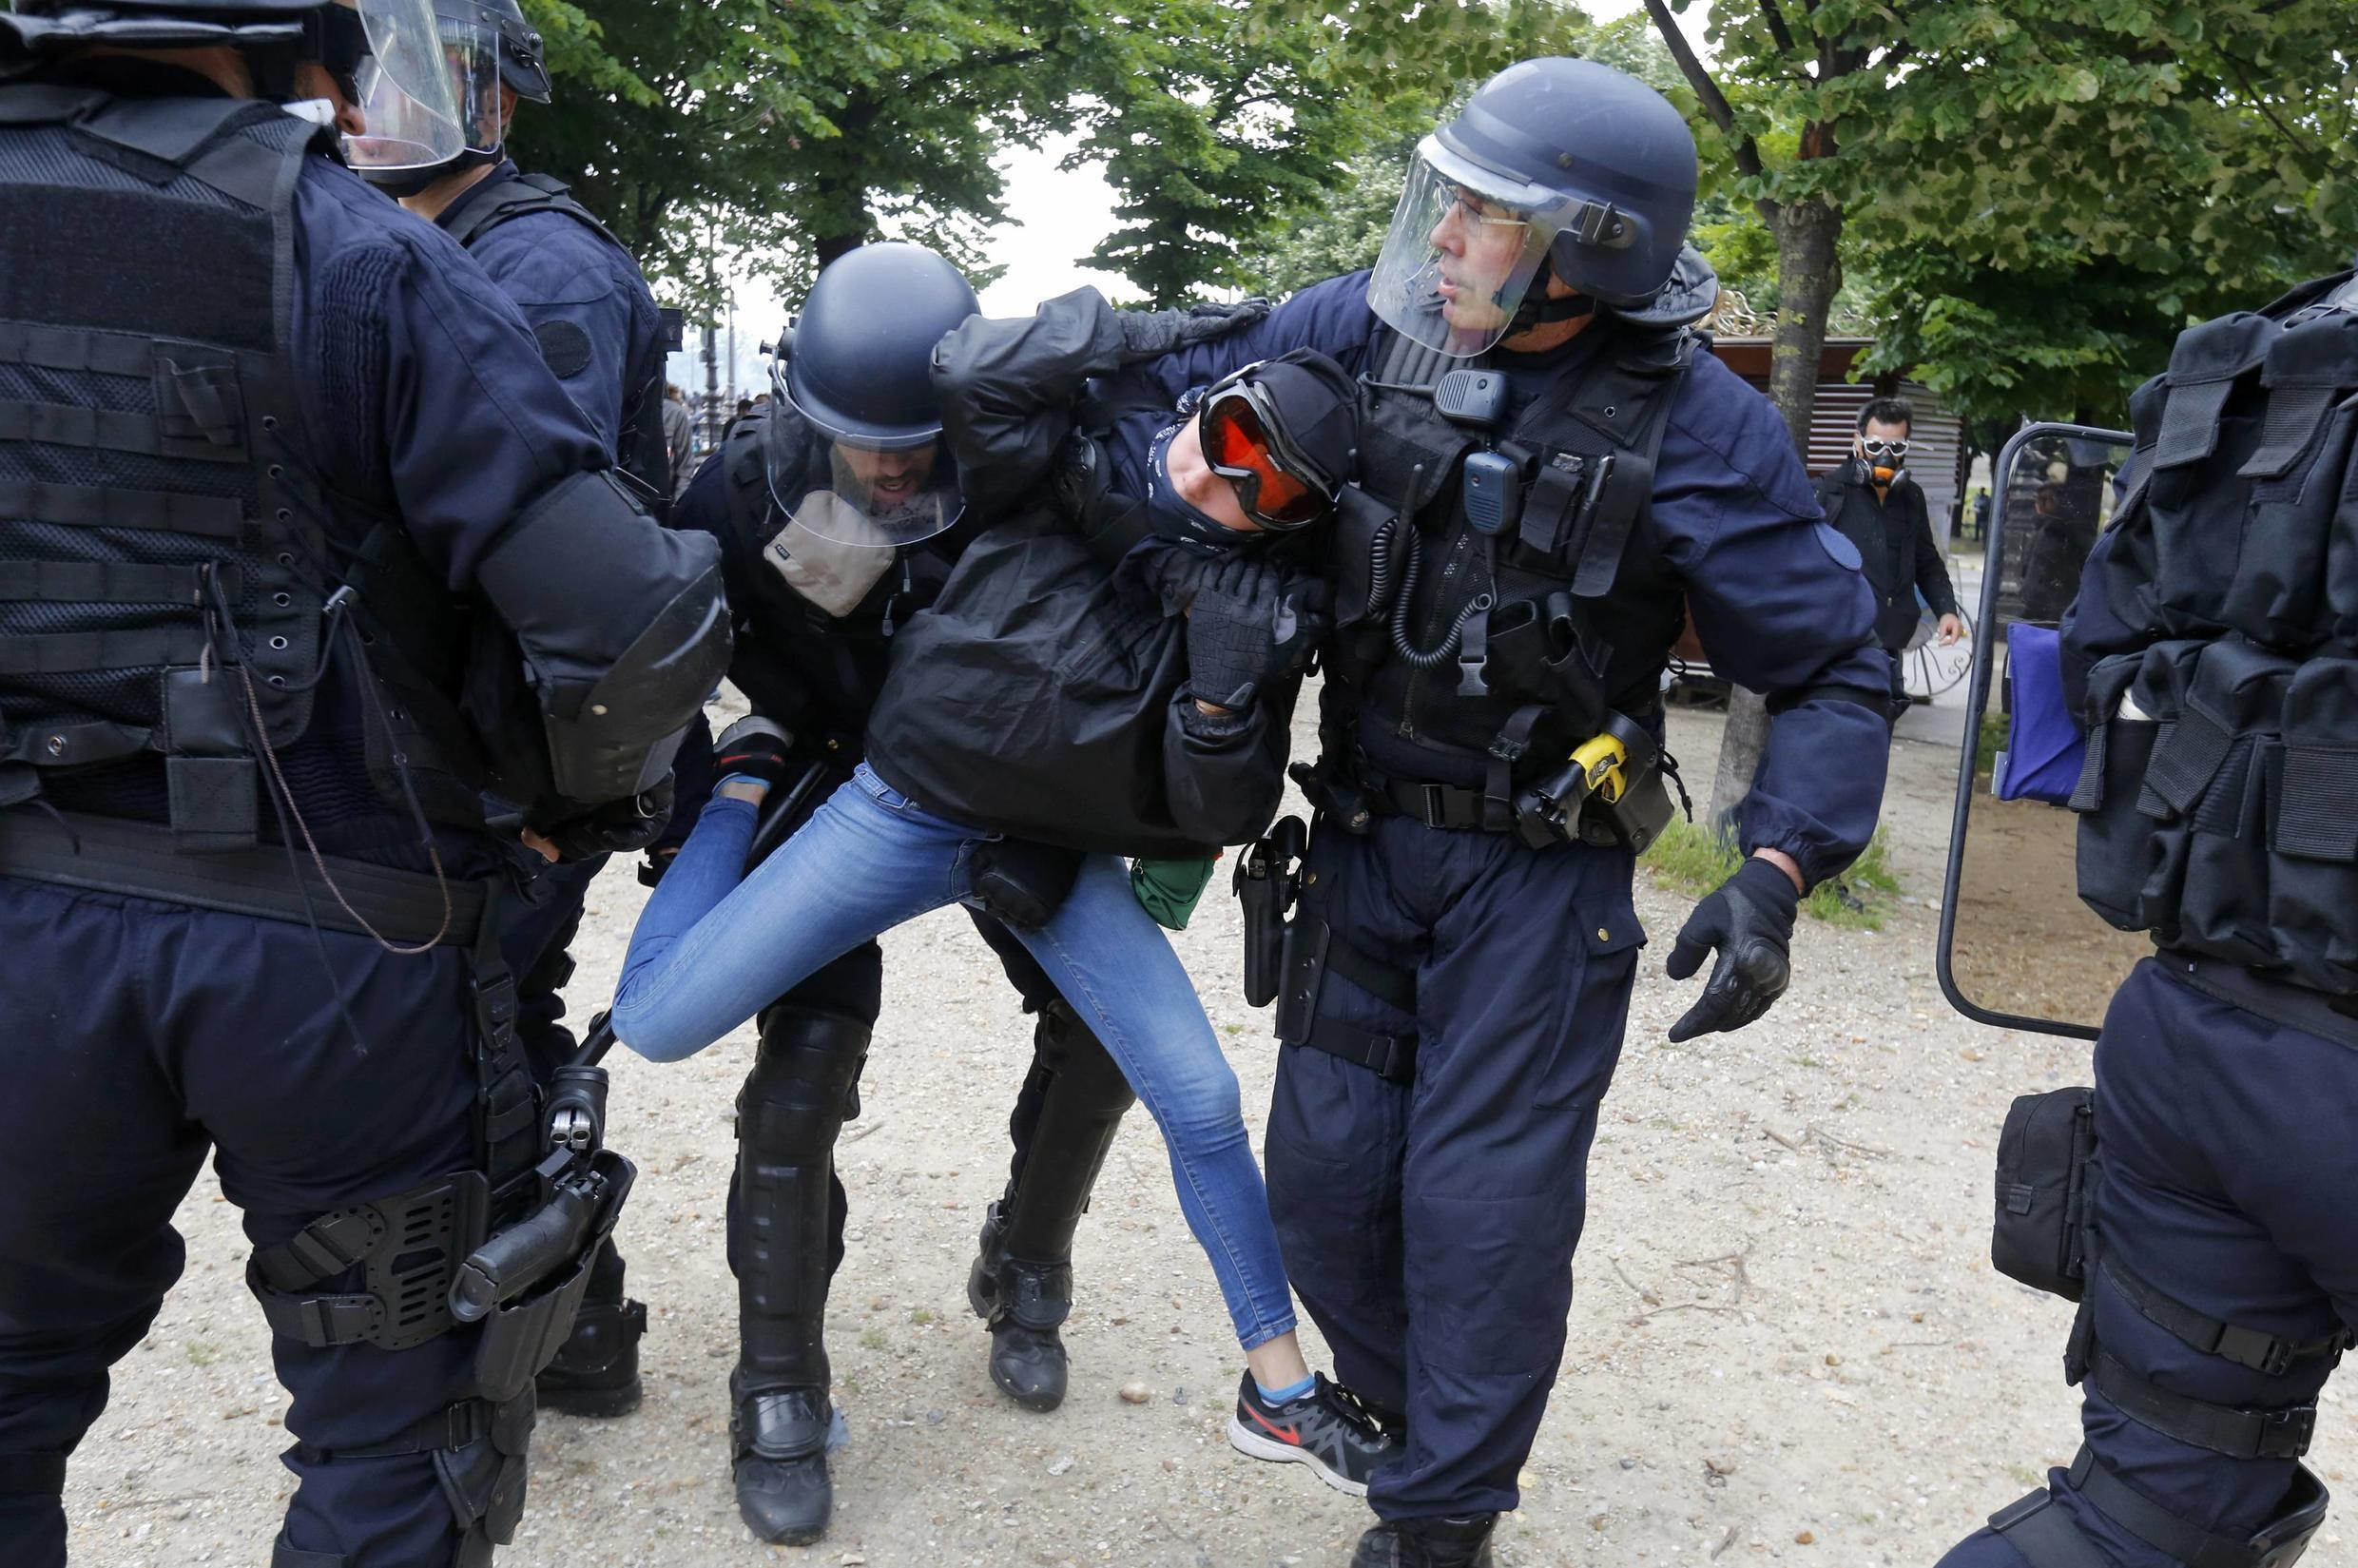 French CRS riot police apprehend a demonstrator during clashes at the Invalides square during a demonstration in Paris as part of nationwide protests against plans to reform French labour laws, France, June 14, 2016.